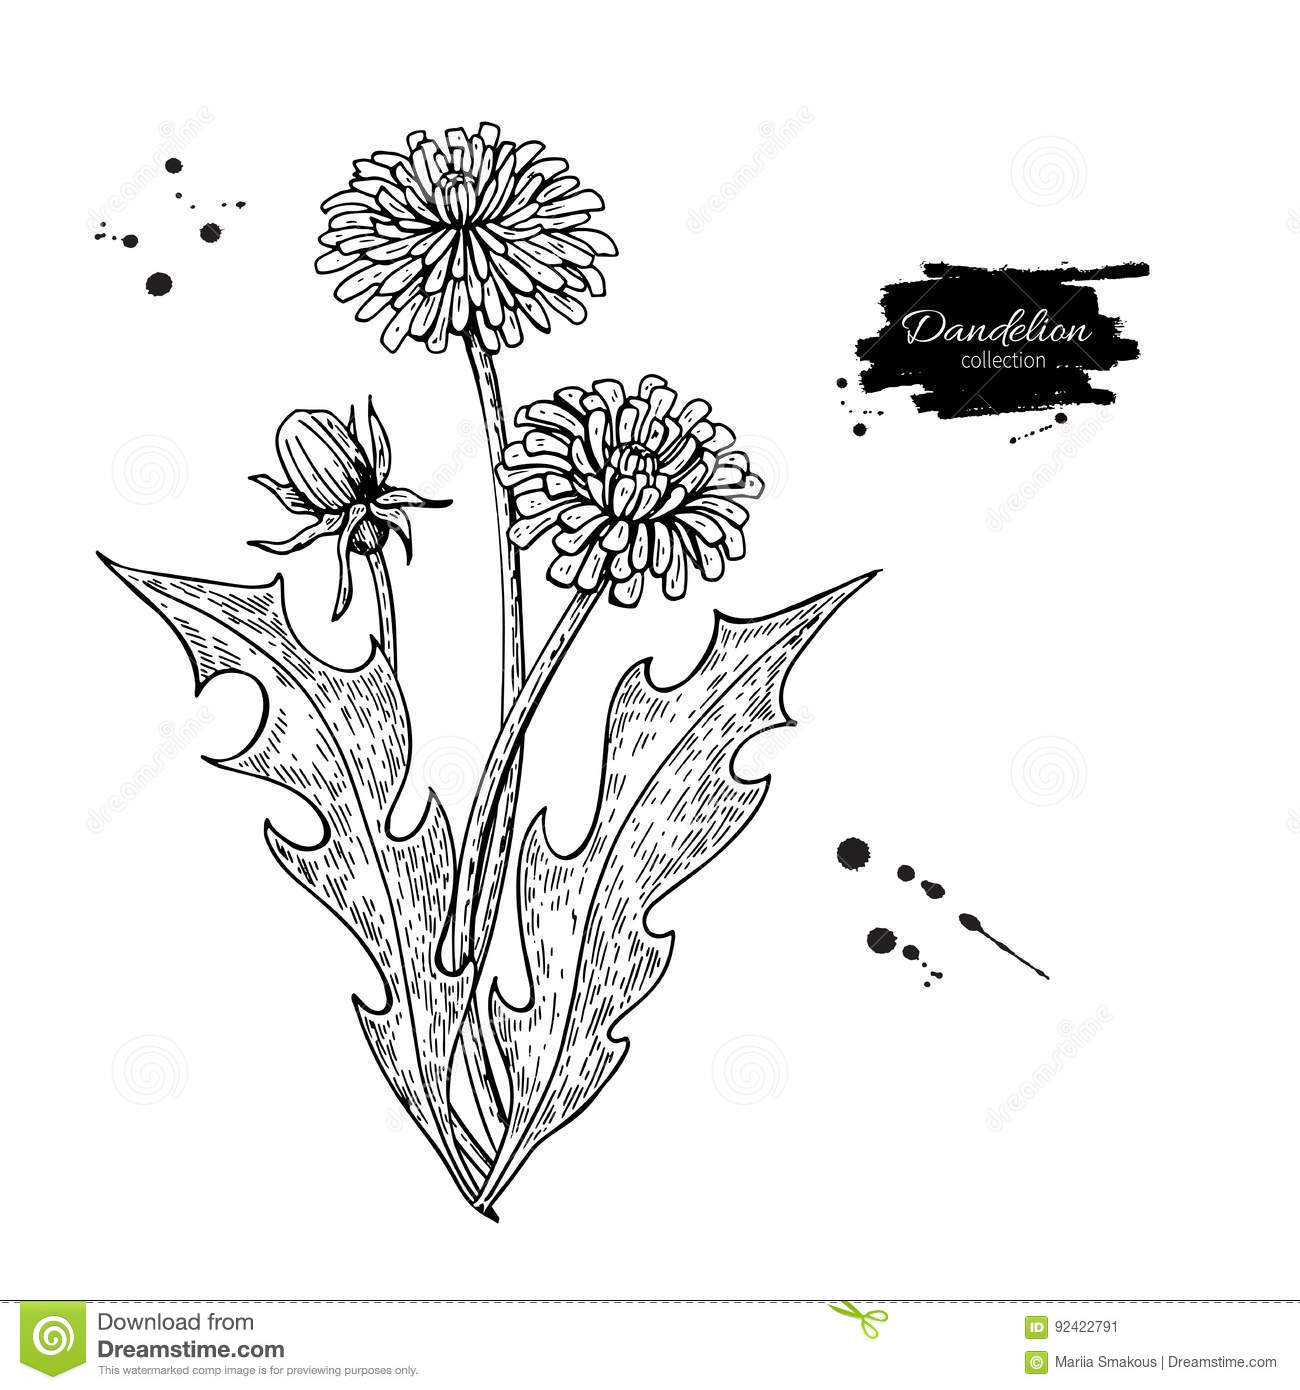 Plant top view vector in group download free vector art stock - Dandelion Flower Vector Drawing Set Isolated Wild Plant And Leaves Herbal Engraved Stock Vector